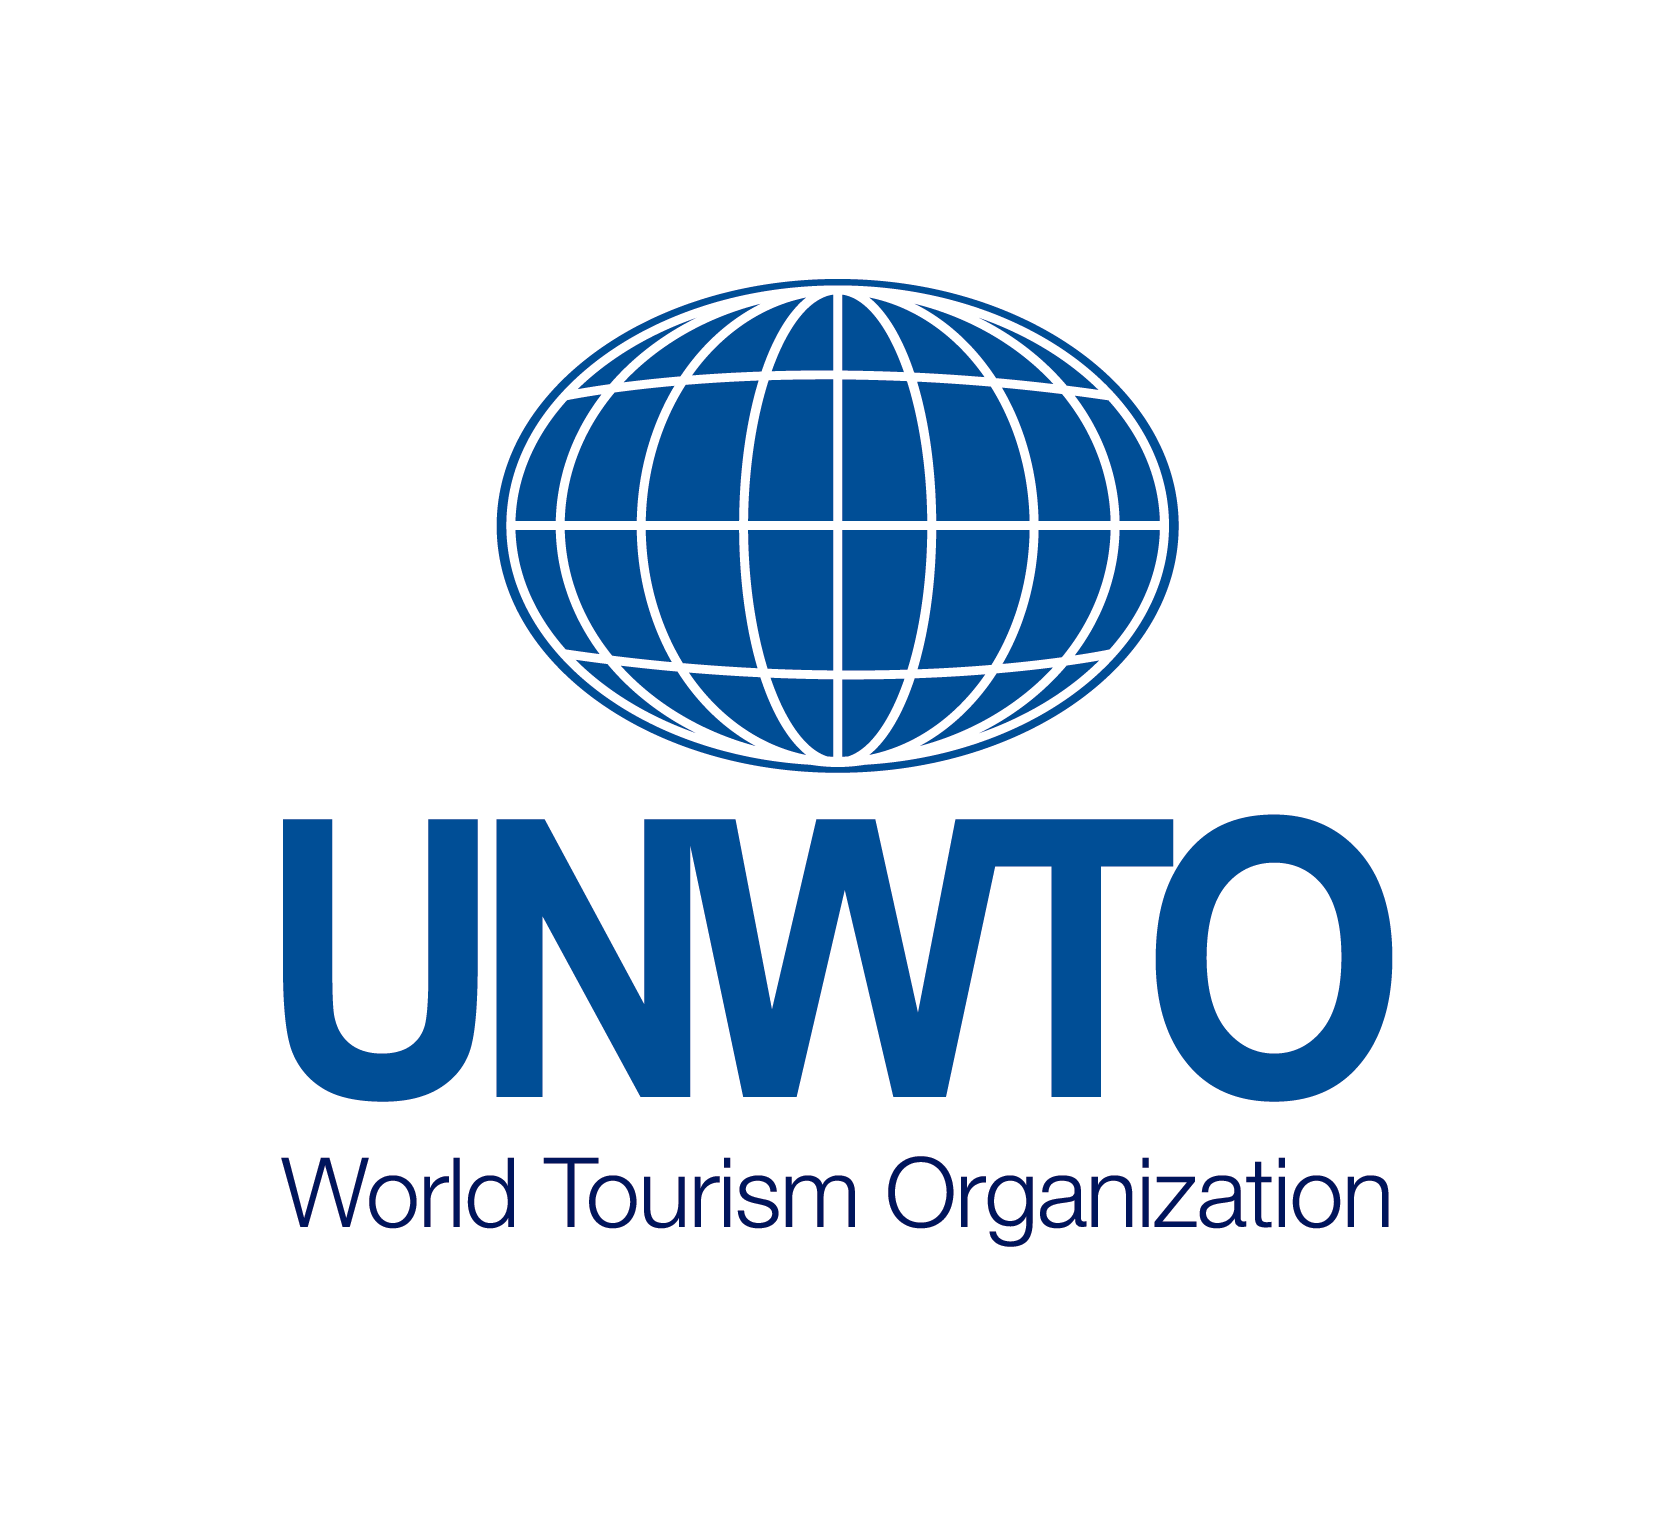 UN World Tourism Organization logo